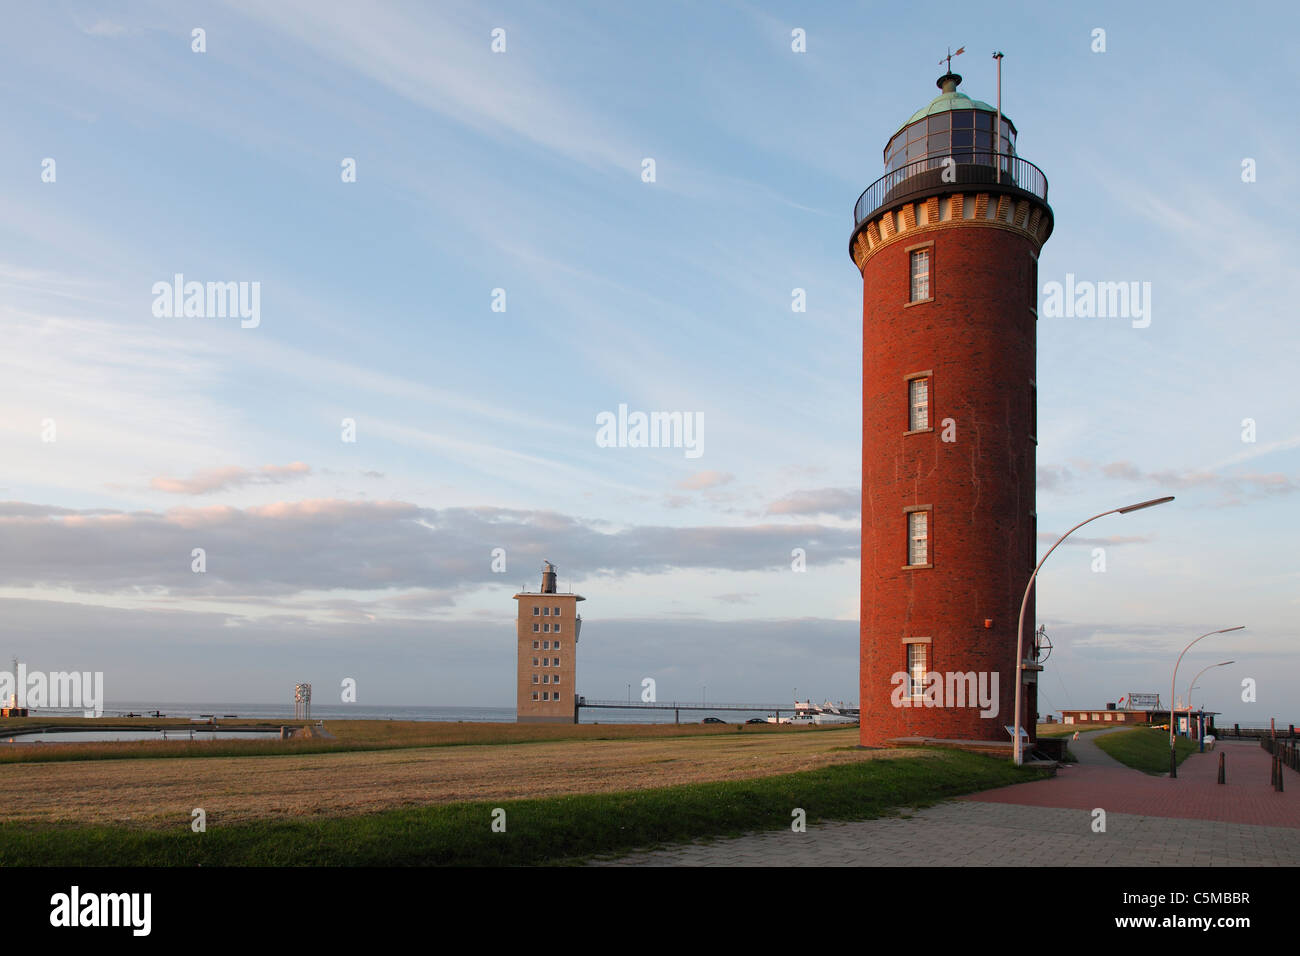 lighthouse in Cuxhaven, Germany - Stock Image